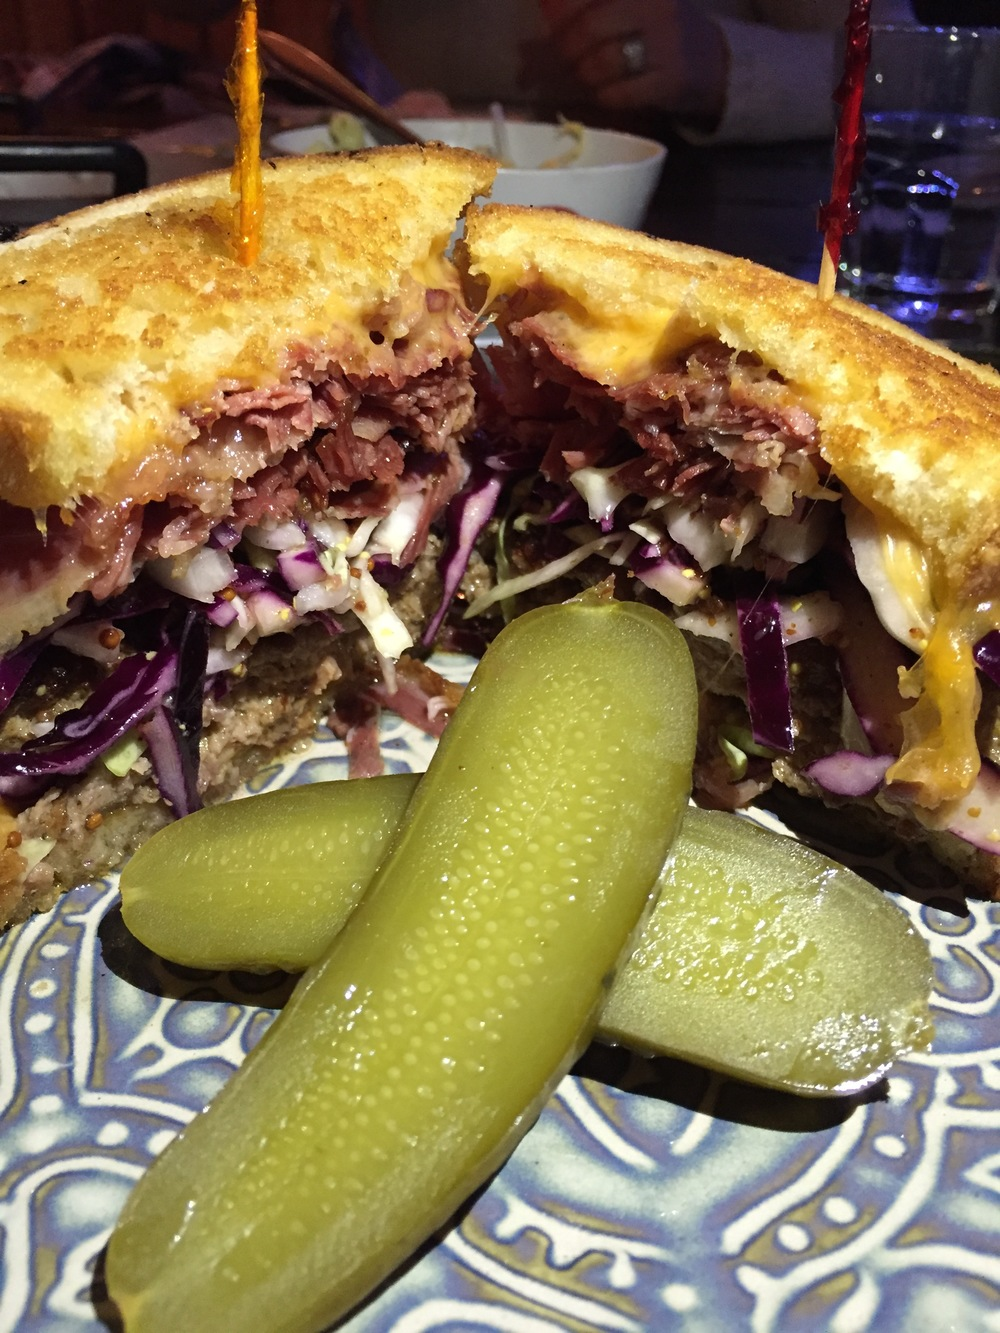 Montreal Smoked Patty Melt